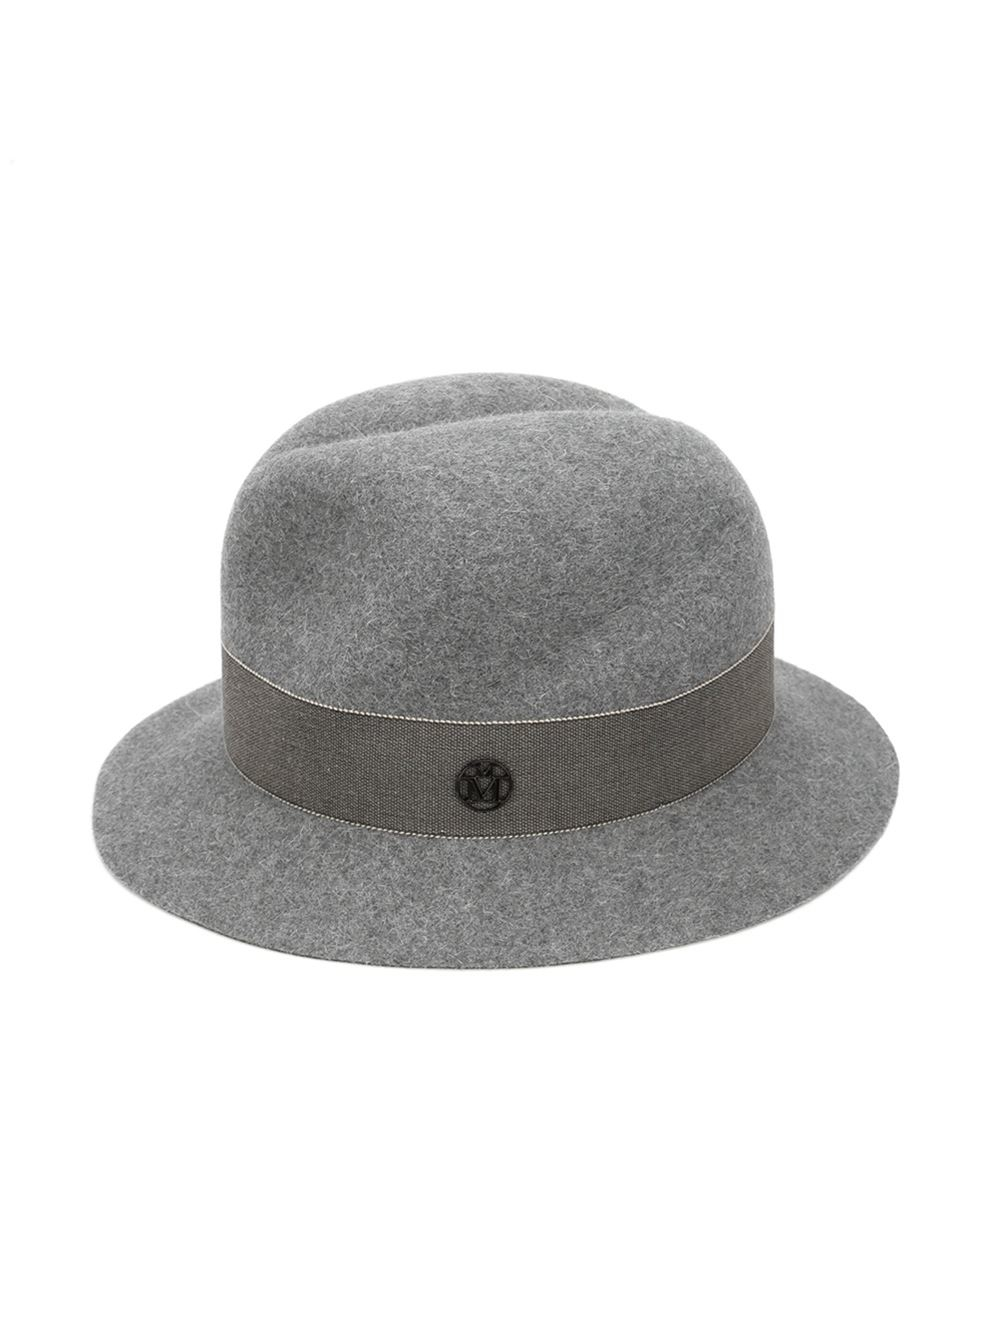 Lyst maison michel 39 yoshika 39 hat in gray for Maison michel